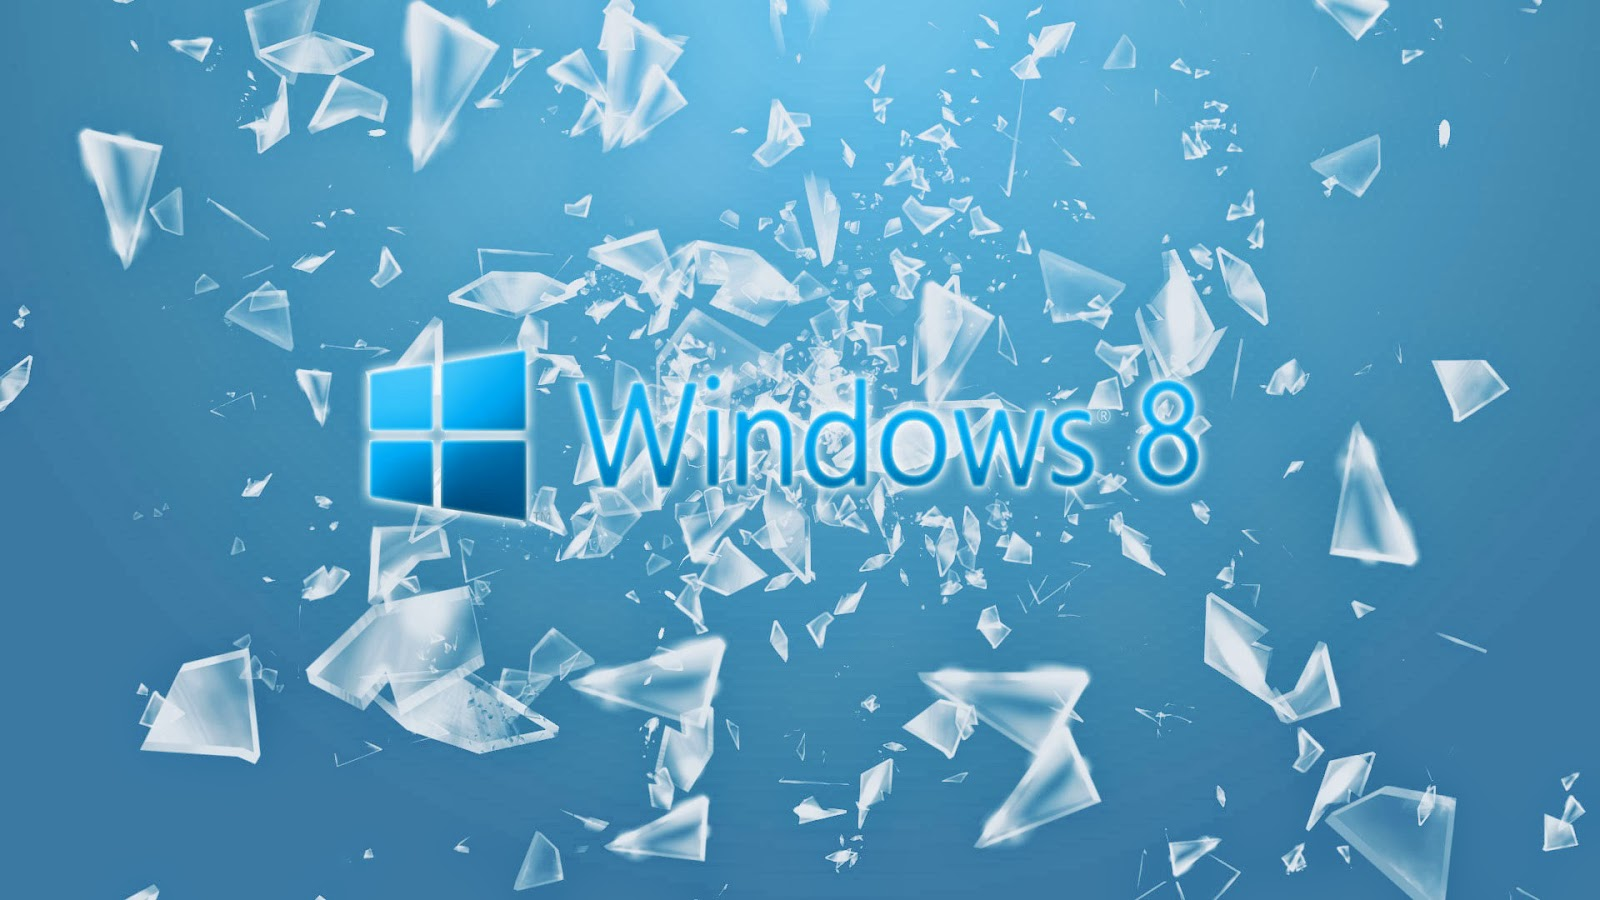 Windows-8-full-HD-best-3D-wallpaper-collection-pack-free-download.jpg